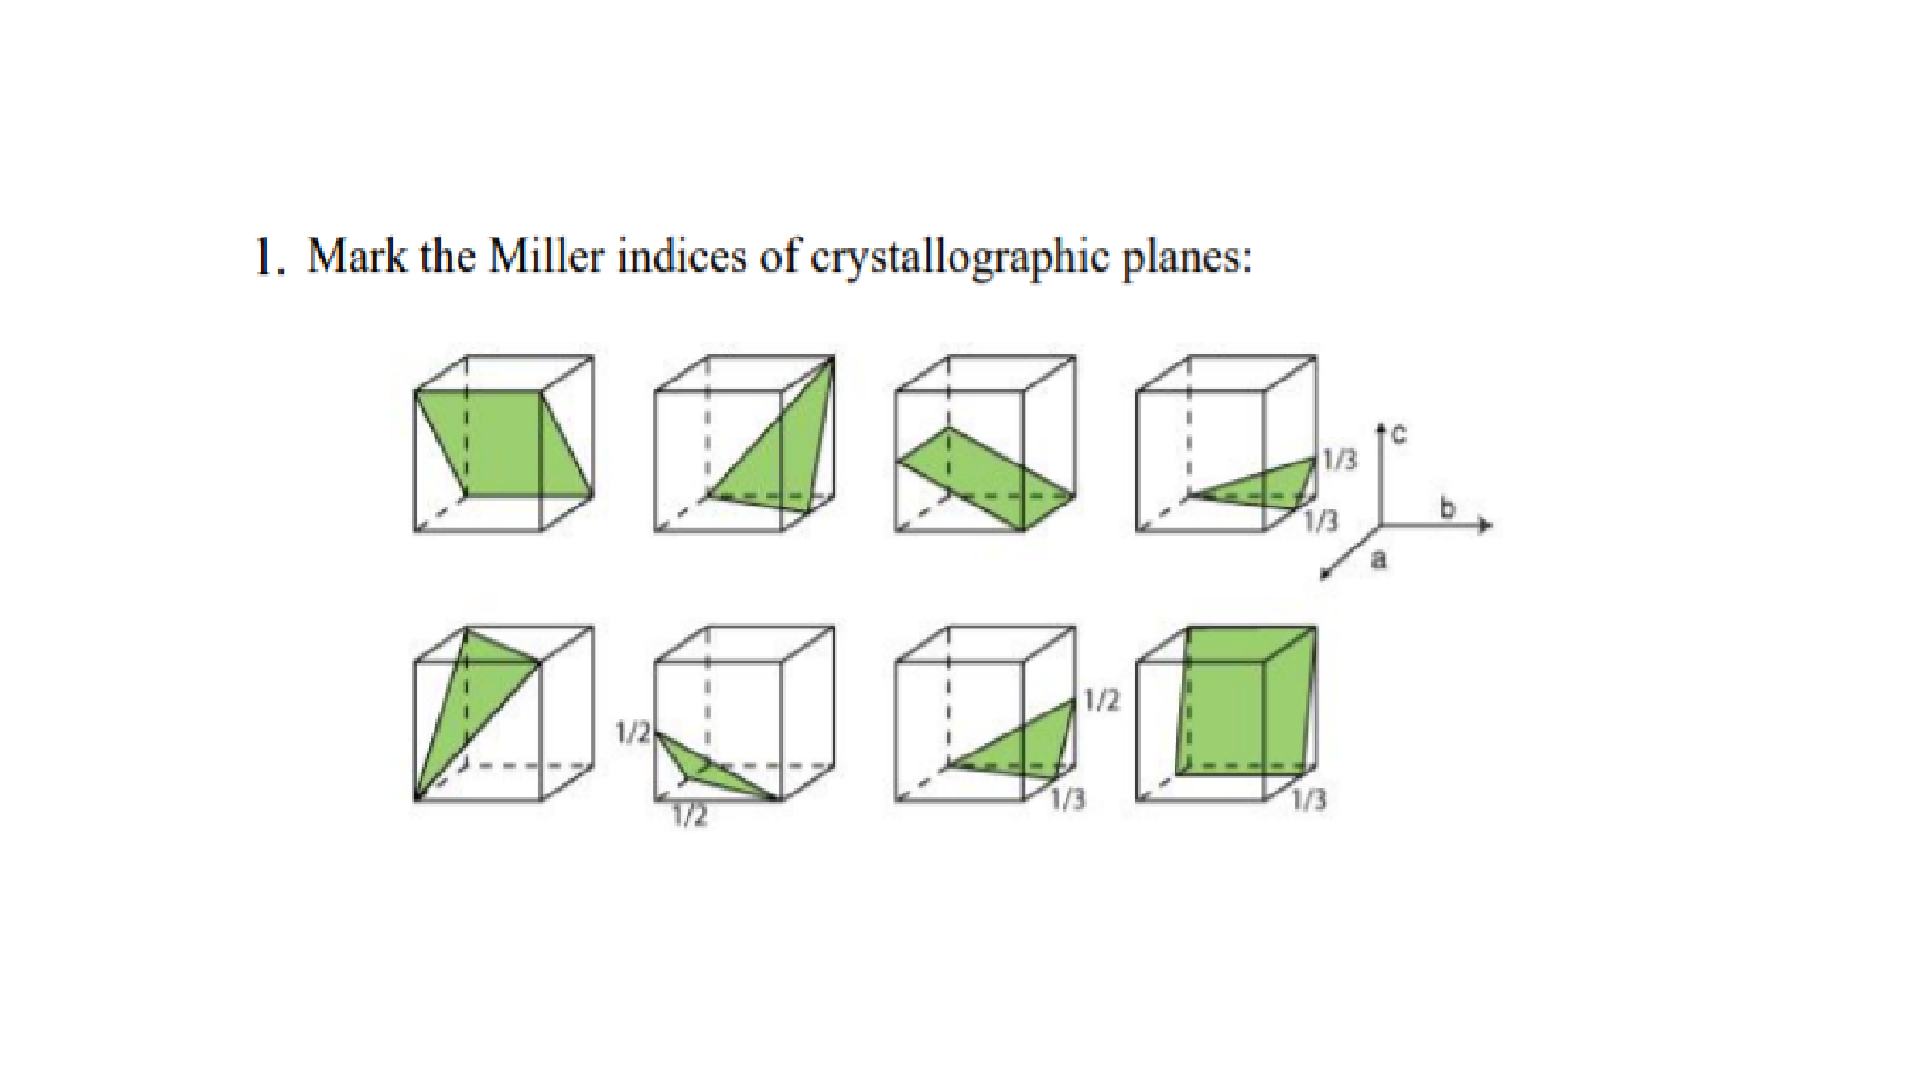 1. Mark the Miller indices of crystallographic planes: 1/3 1/3 1/2 1/2 1/3 1/3 1/2